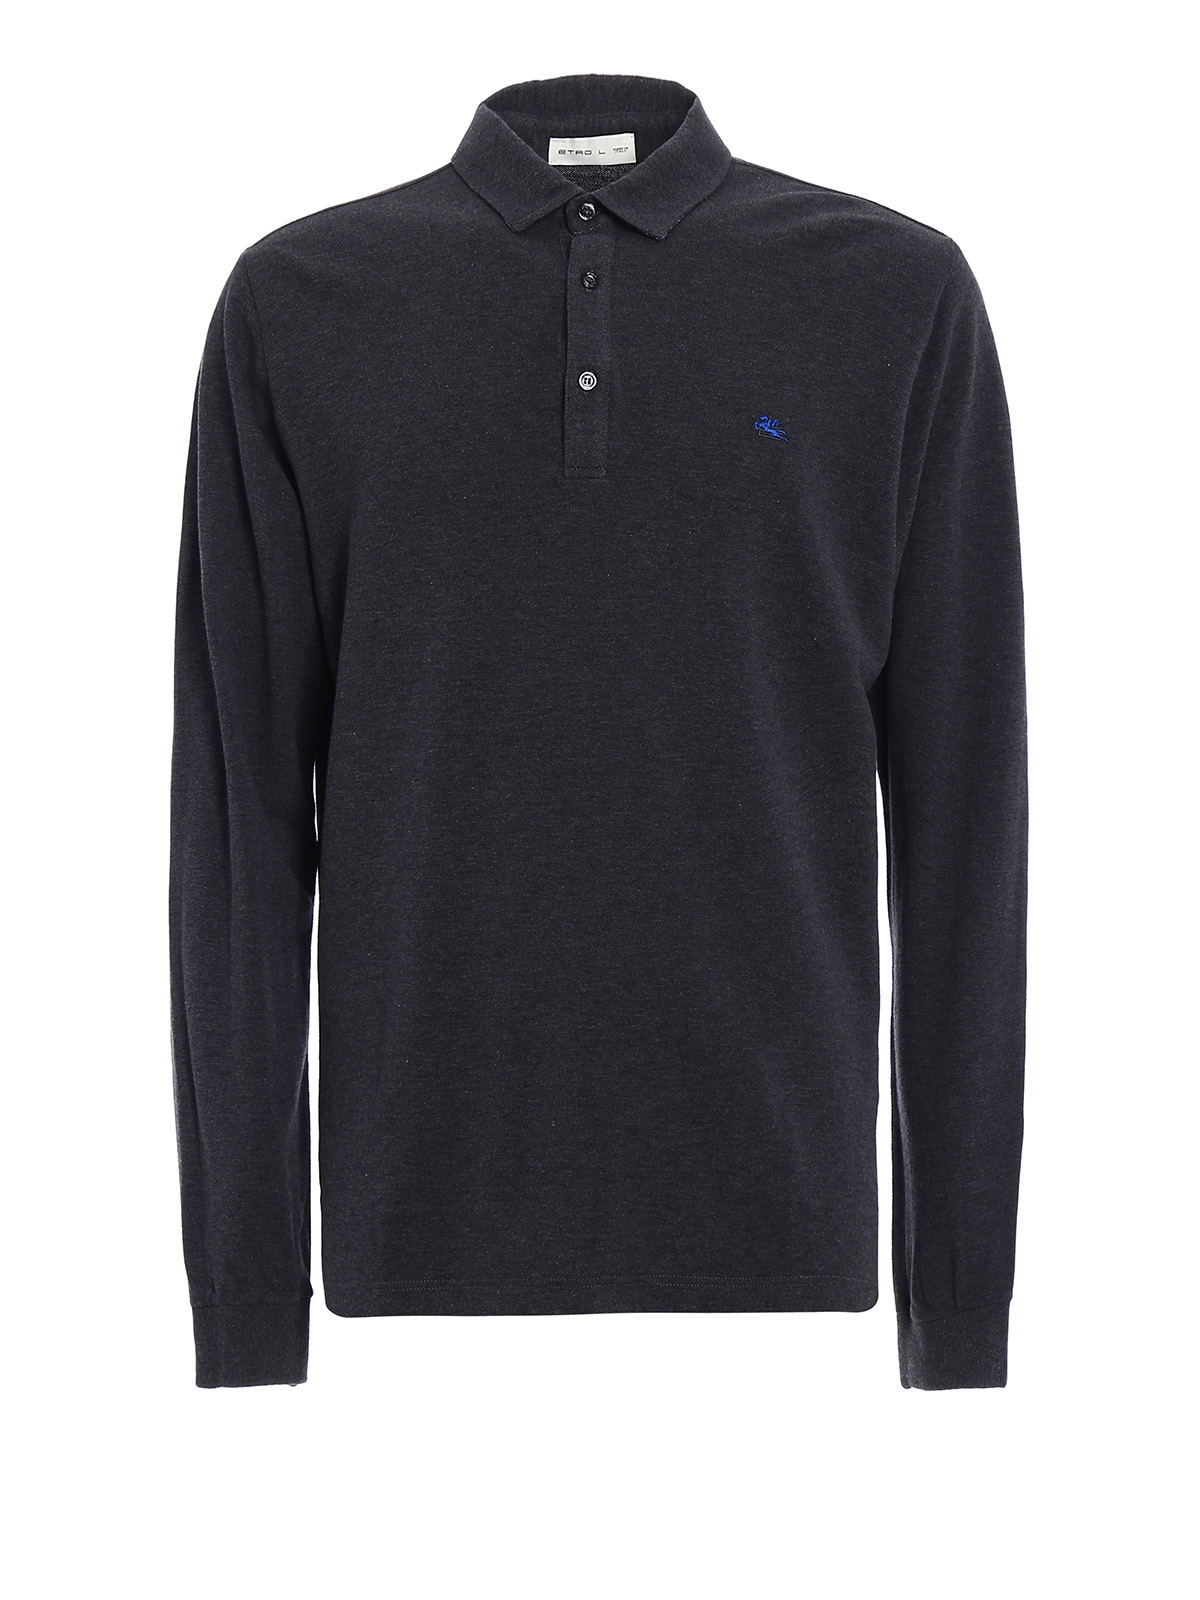 Cotton Pique Long Sleeved Polo By Etro Polo Shirts Ikrix